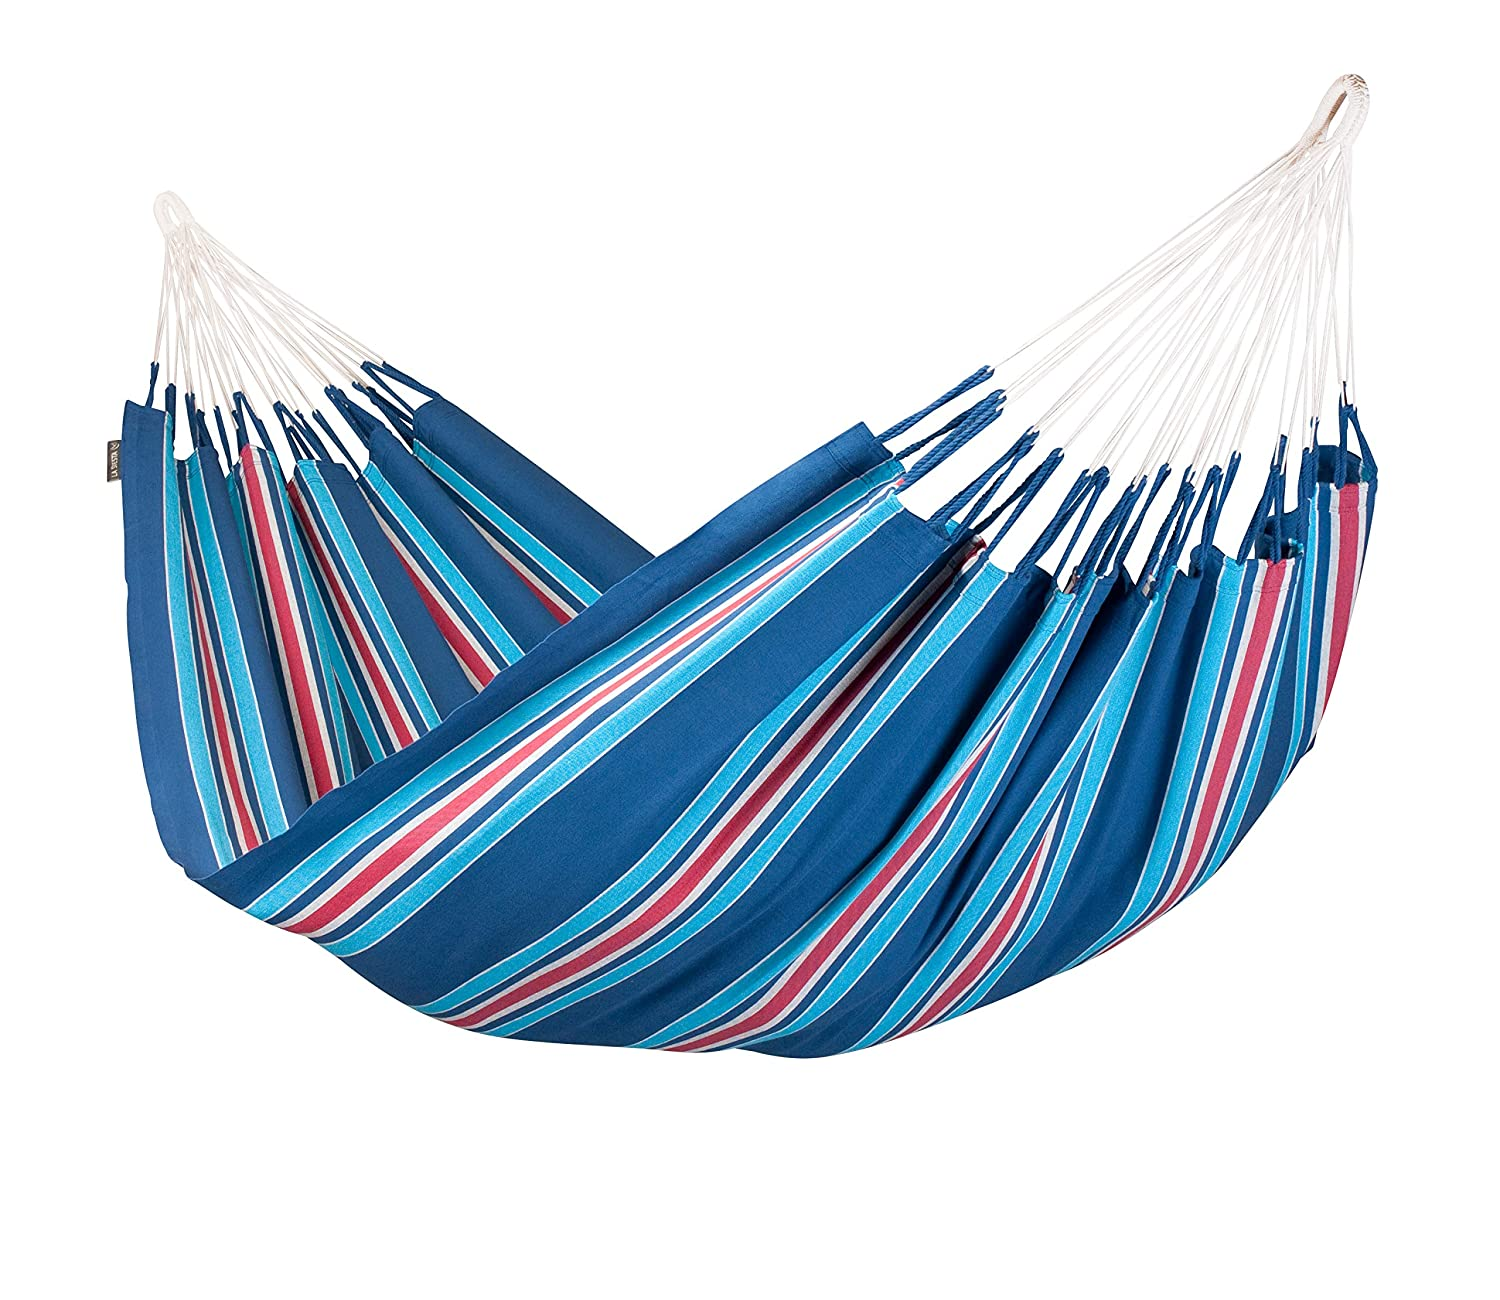 LA SIESTA Currambera Blueberry – Cotton Double Classic Hammock